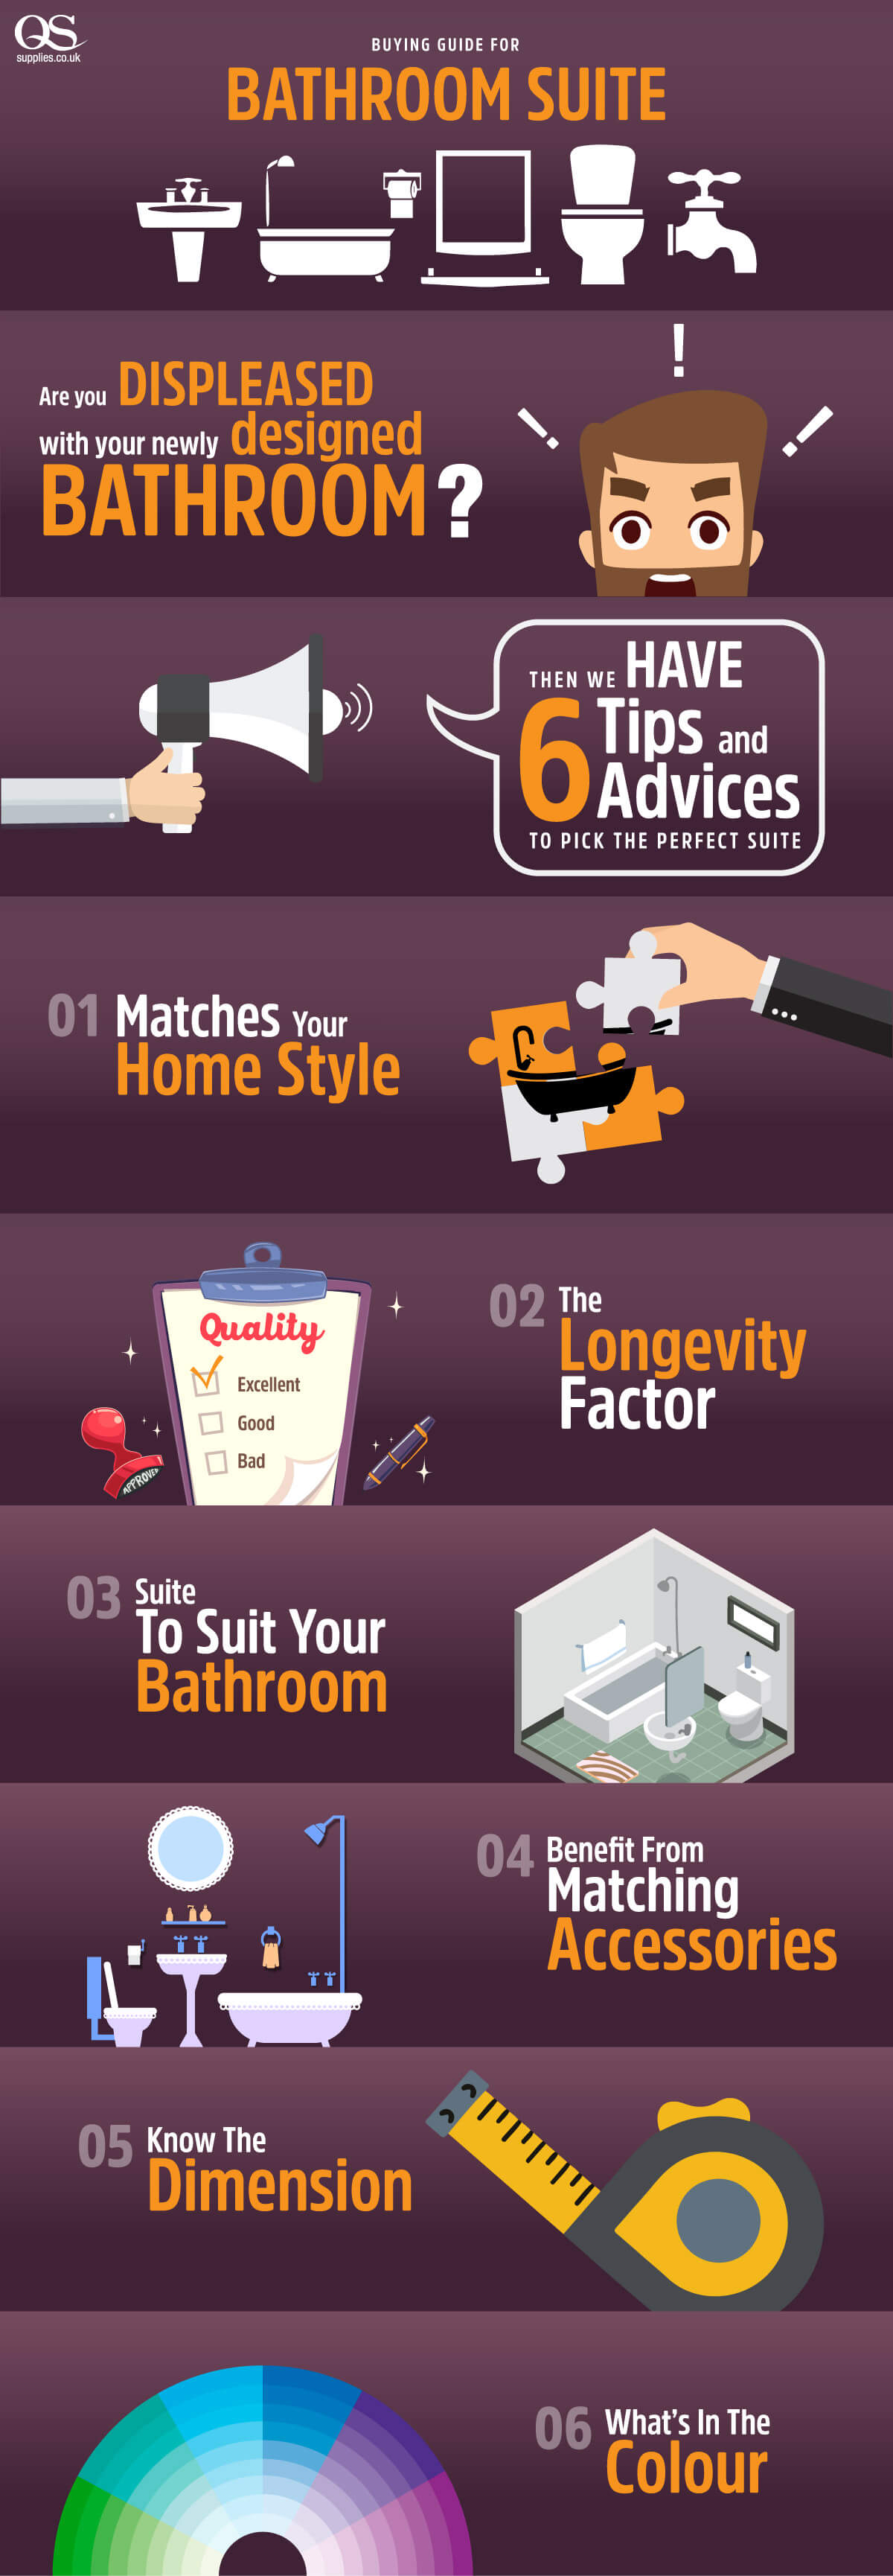 Infographic Bathroom buying guide